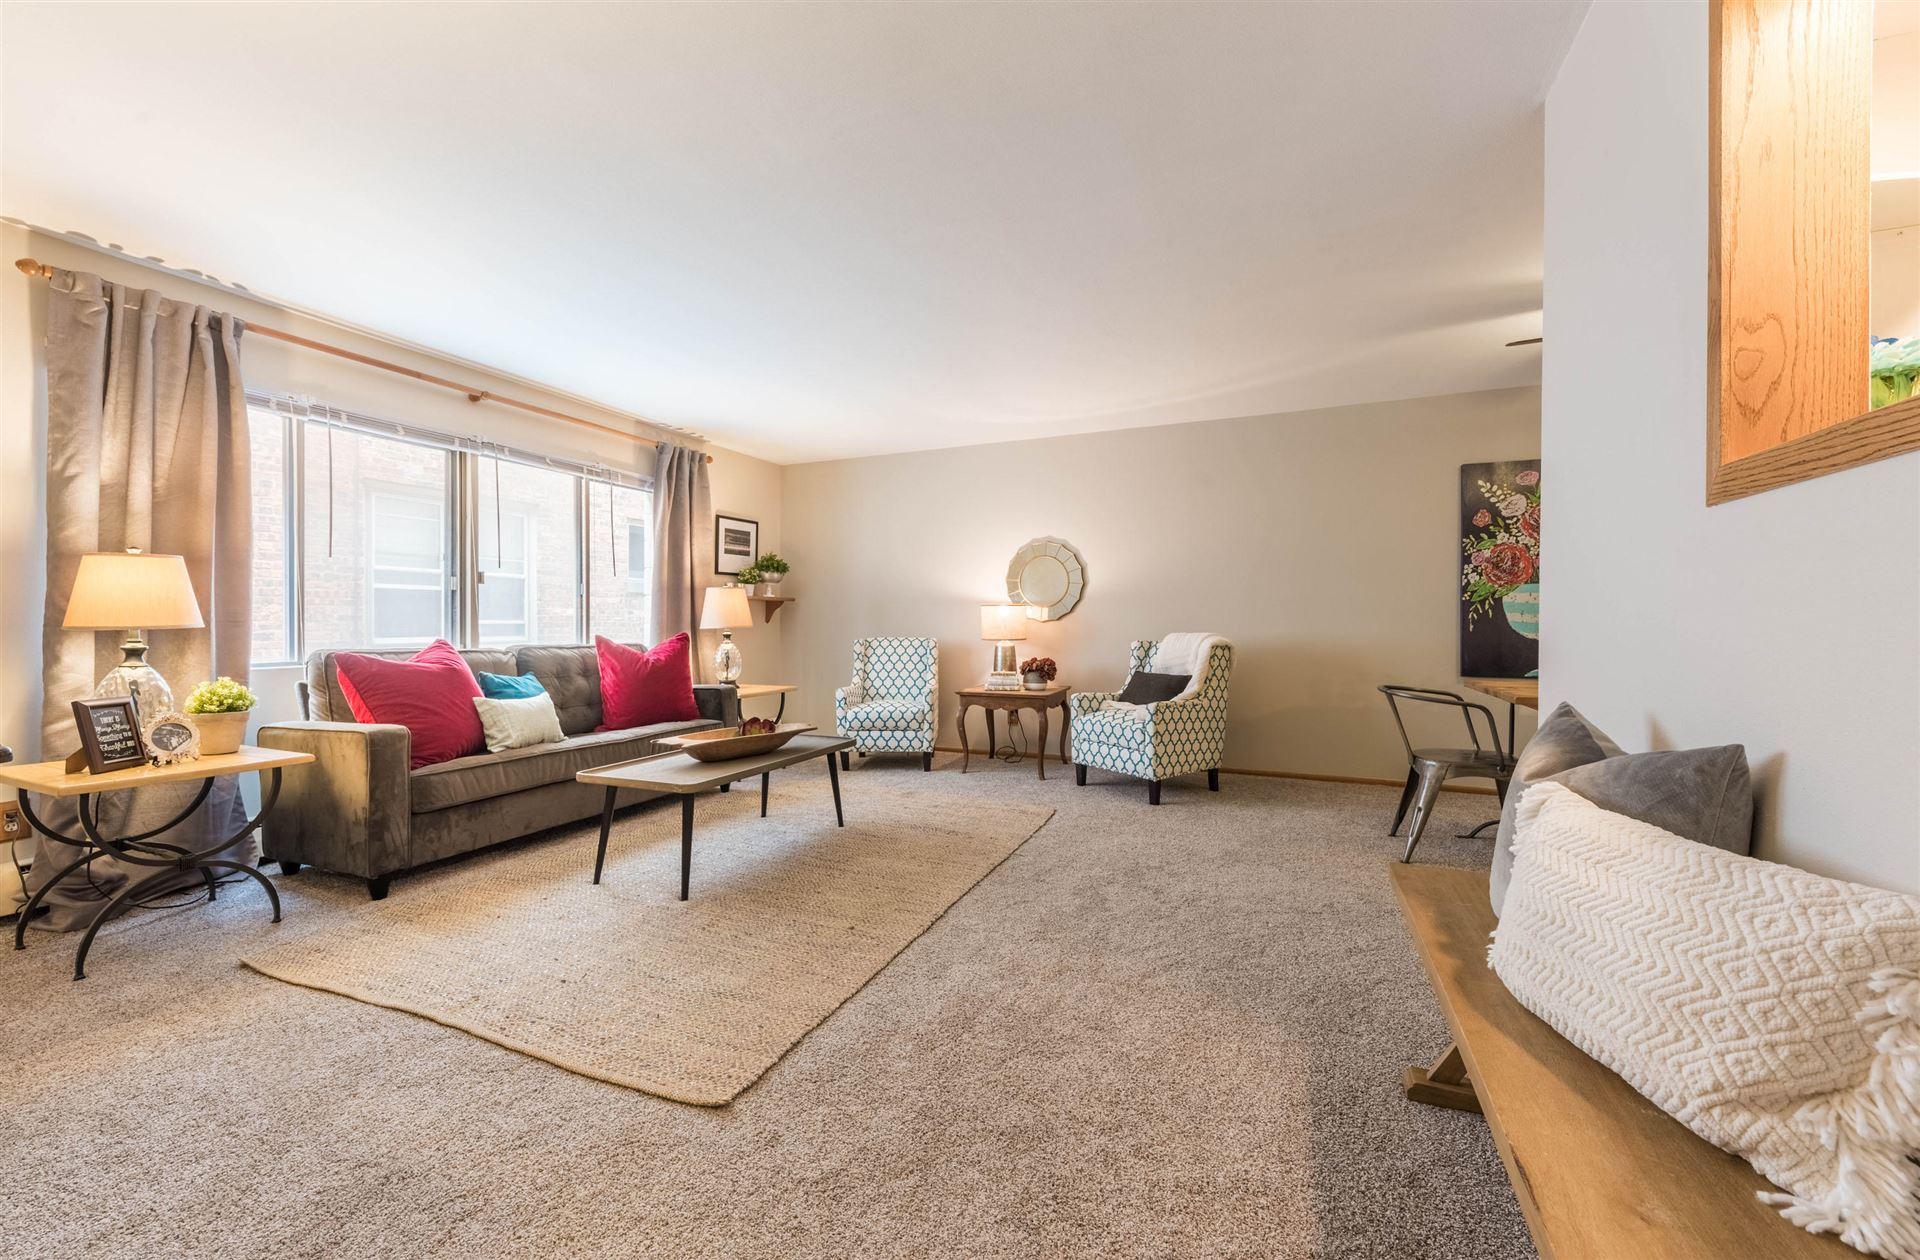 4434 N Oakland Ave #203, Shorewood, WI 53211 - #: 1690439